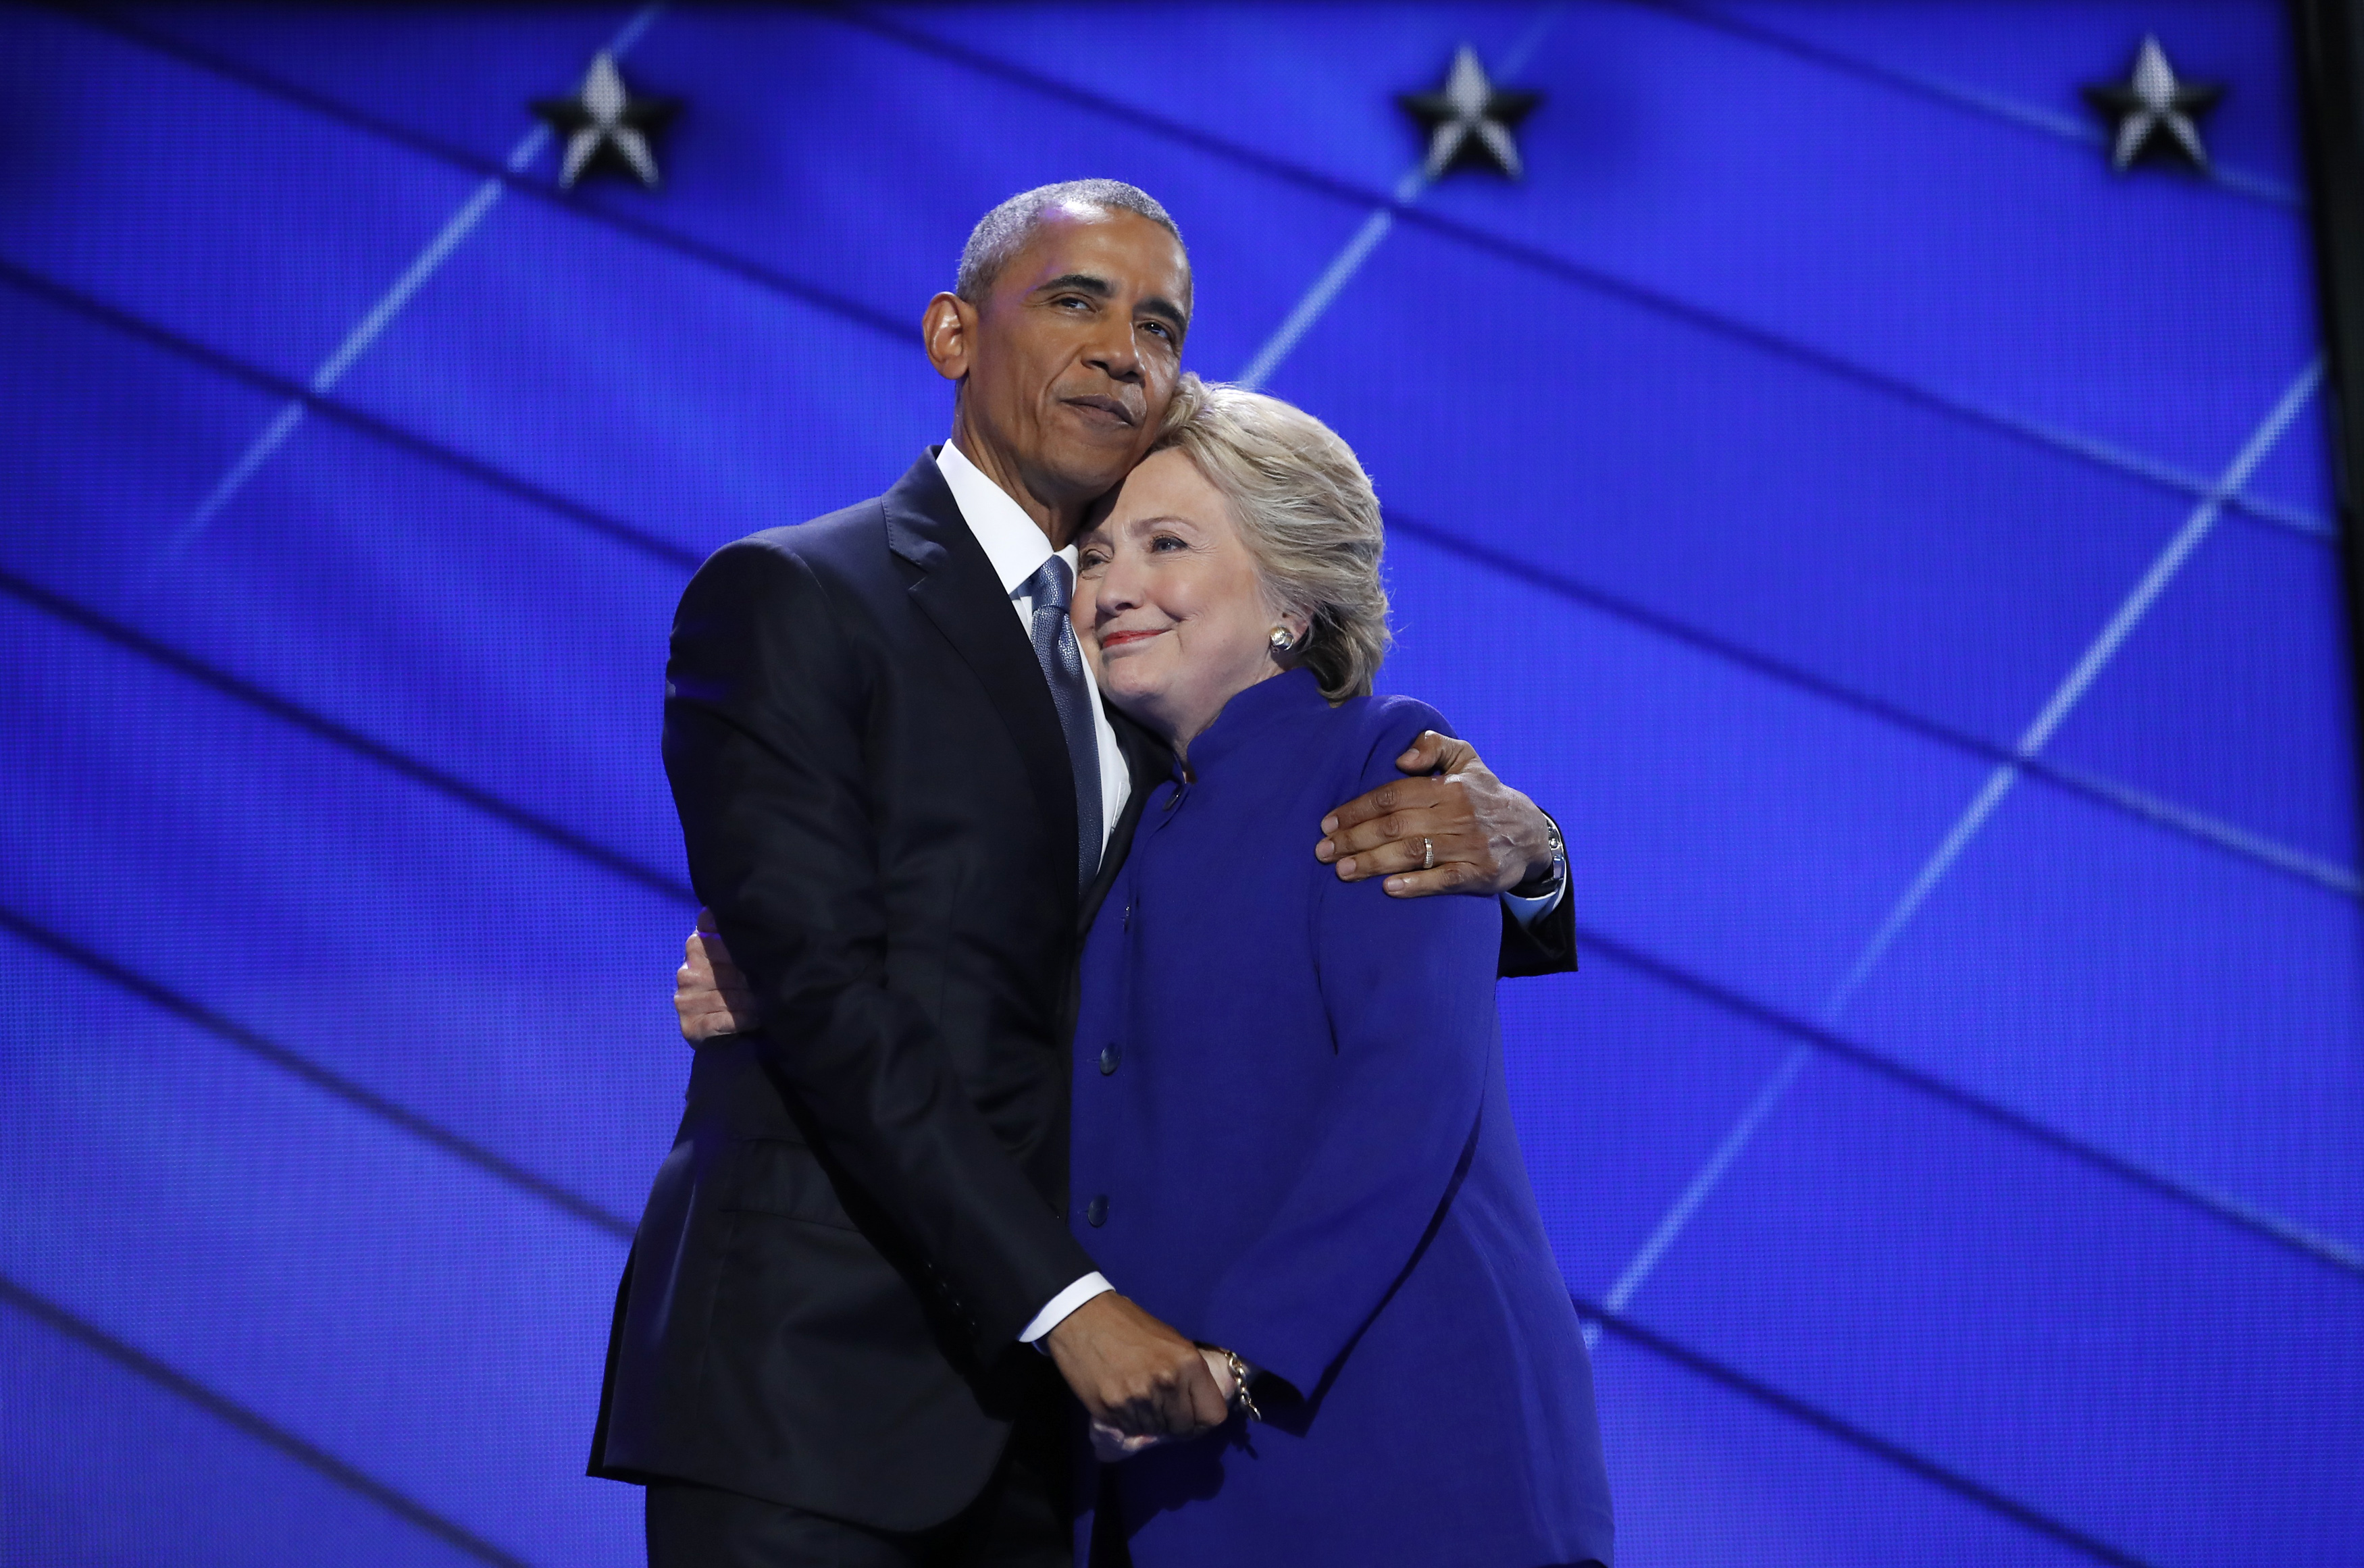 This picture of Hillary and Barack has endless possibilities